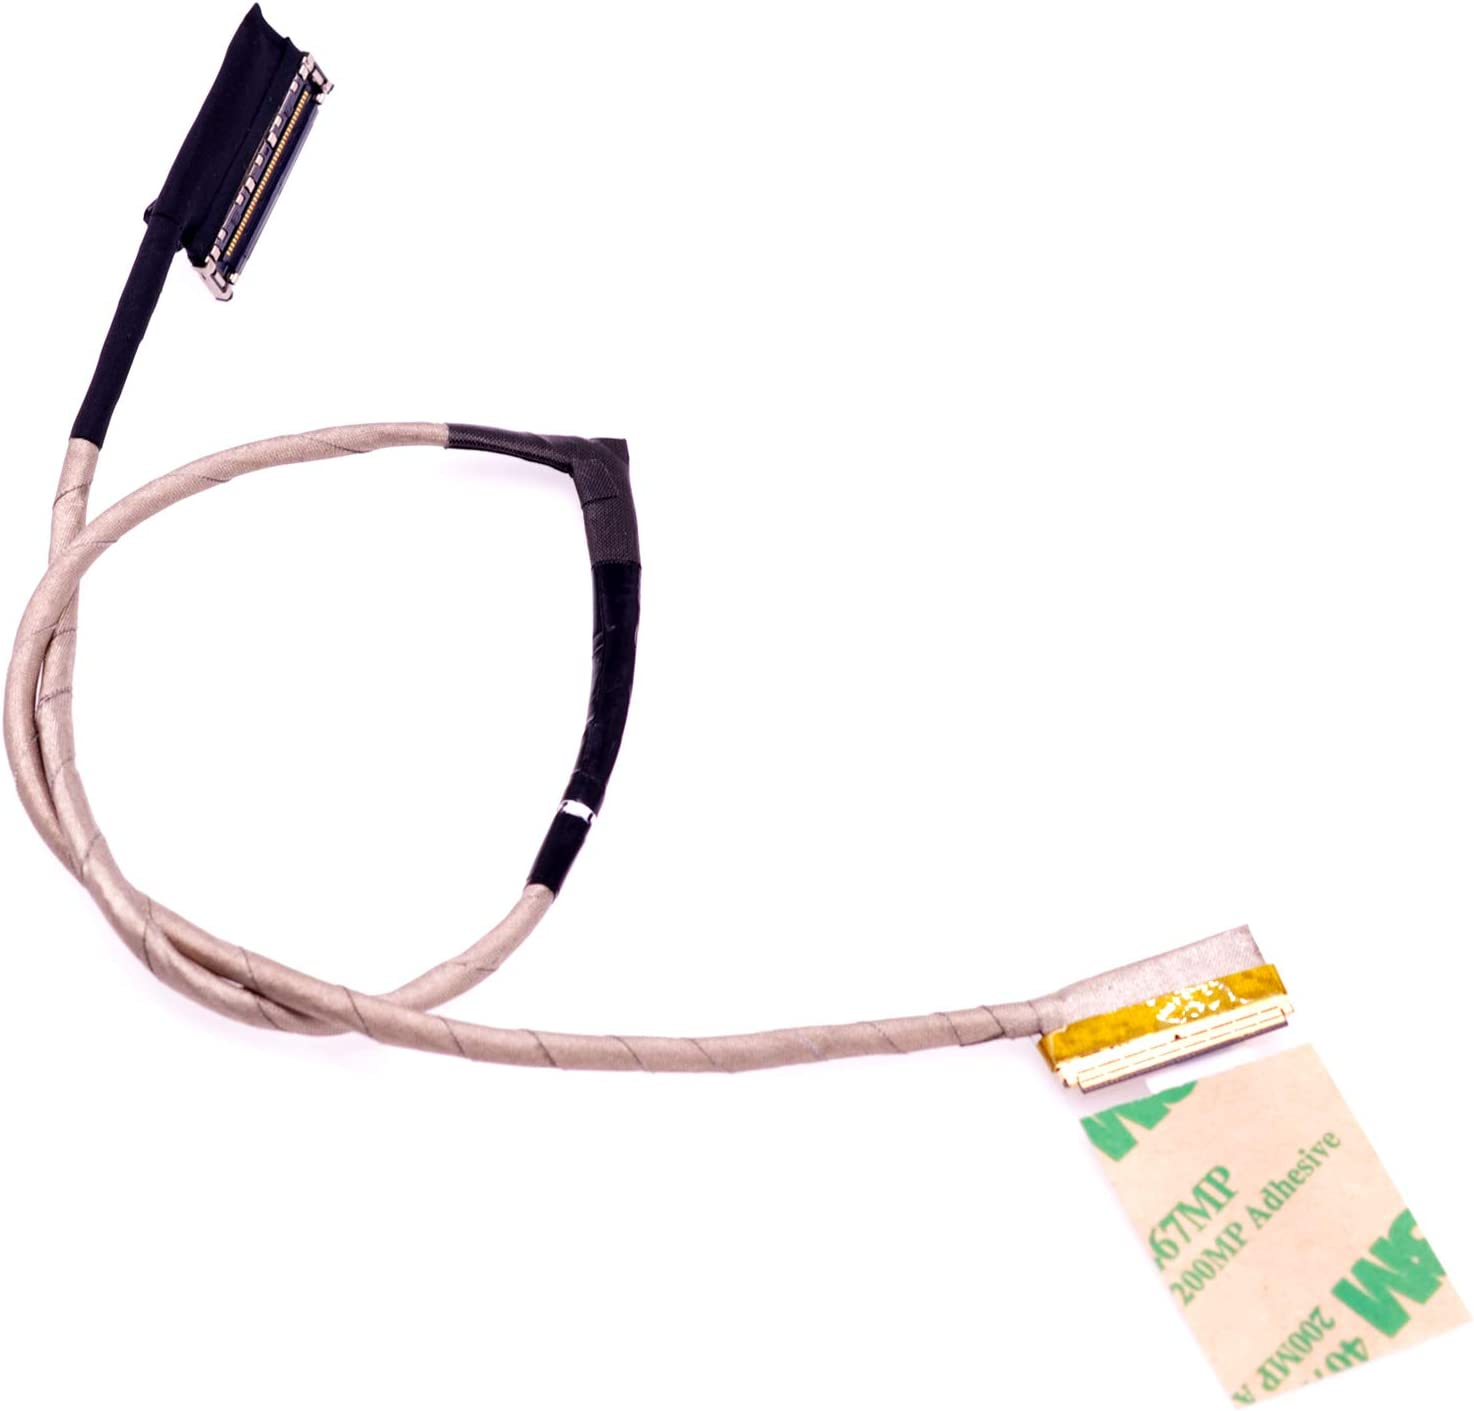 Zahara Laptop LCD LED Screen Cable Replacement for Sony Vaio SVF142C29M SVF142C29U SVF14213CXW SVF142C29U SVF142A23T SVF142A24T DD0HK8LC010